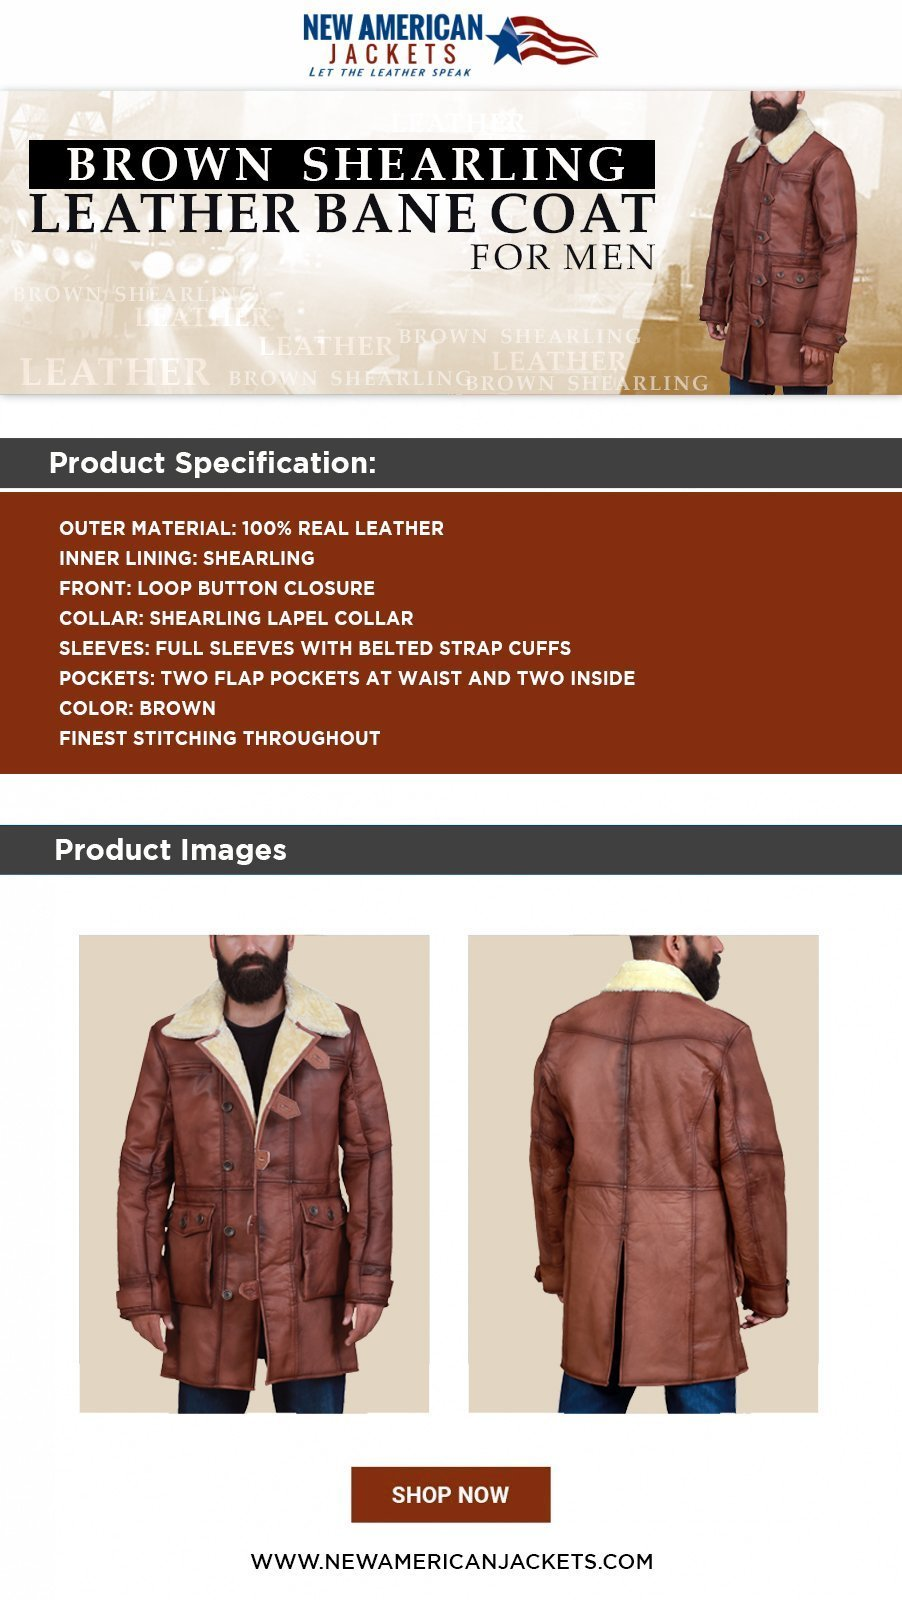 Shearling Leather Bane Coat